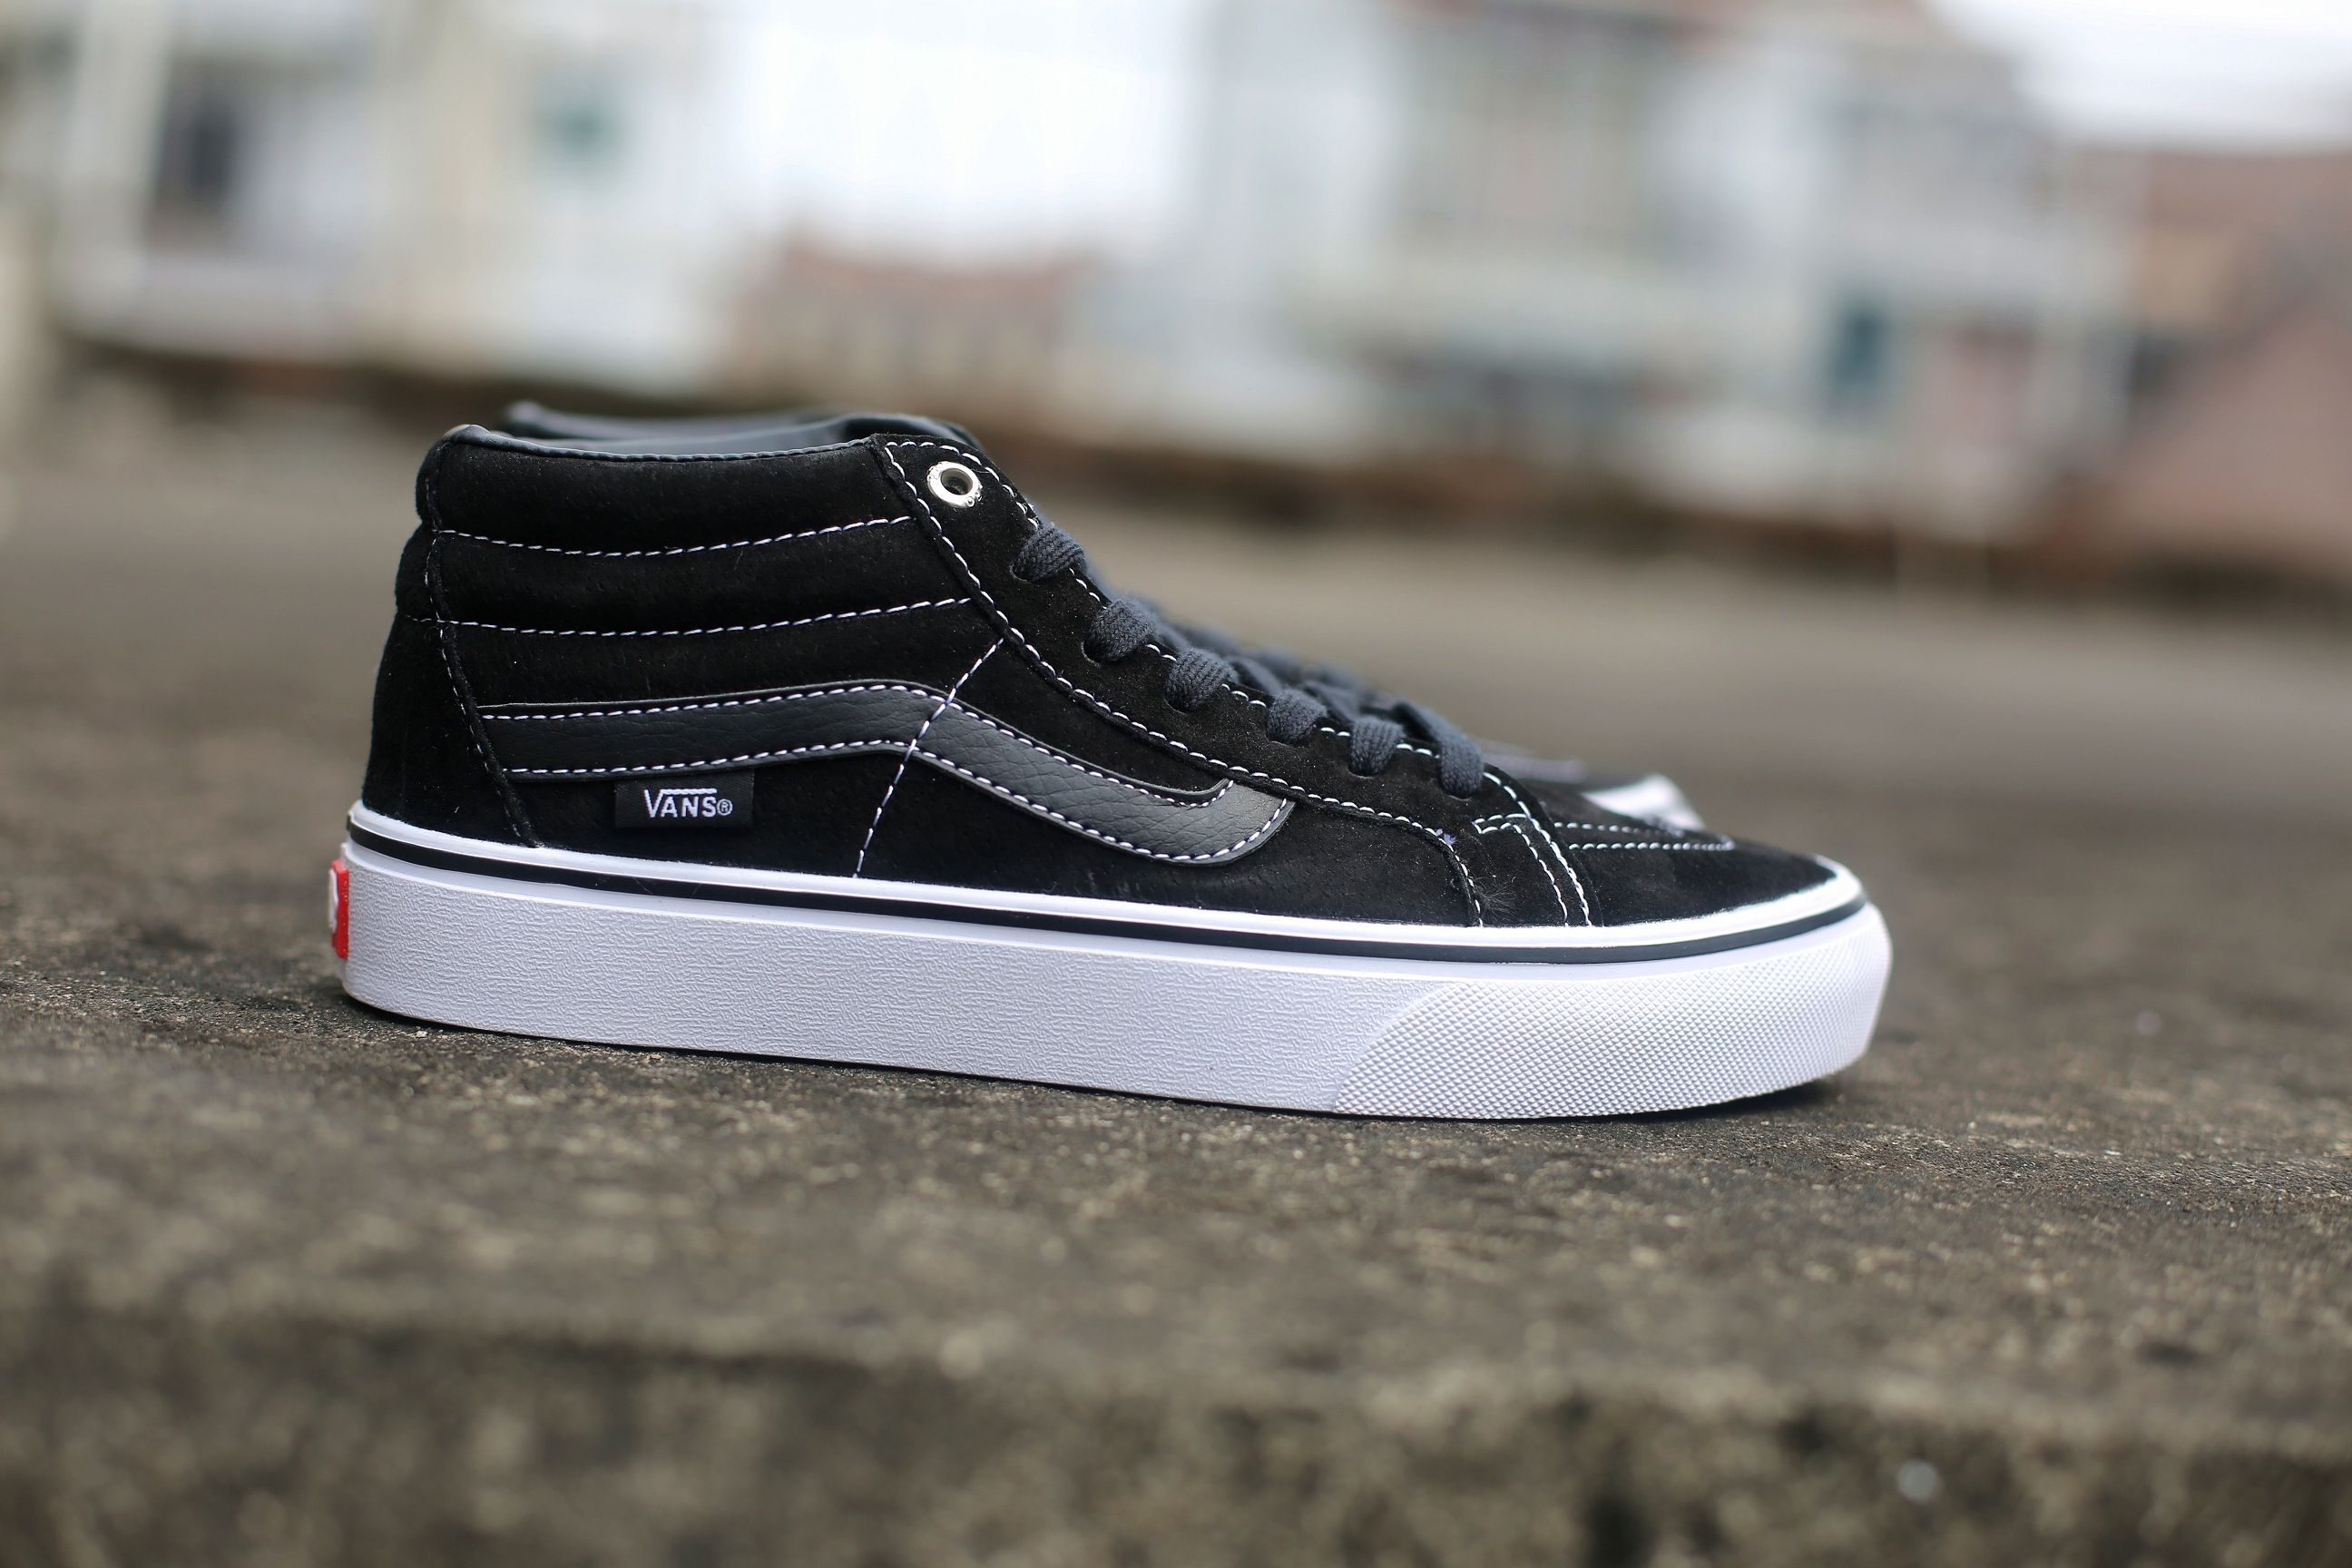 0a3c2eb681d Vans SK8-Mid Pro Purple Light Black HK08 Skate Shoes  Vans